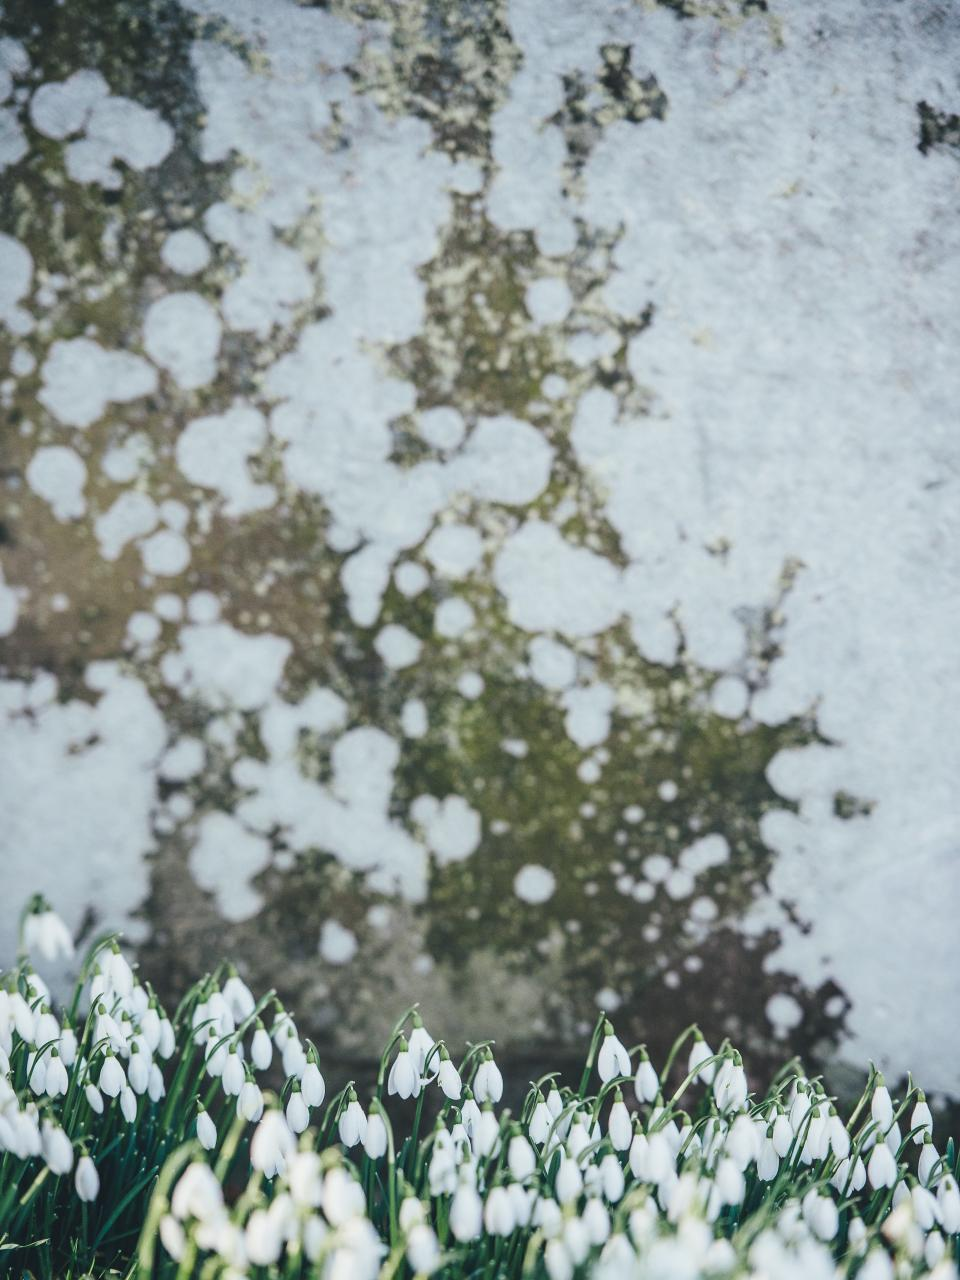 plants, flower, tulips, petals, leaves, garden, outdoor, nature, wall, stain, white, green